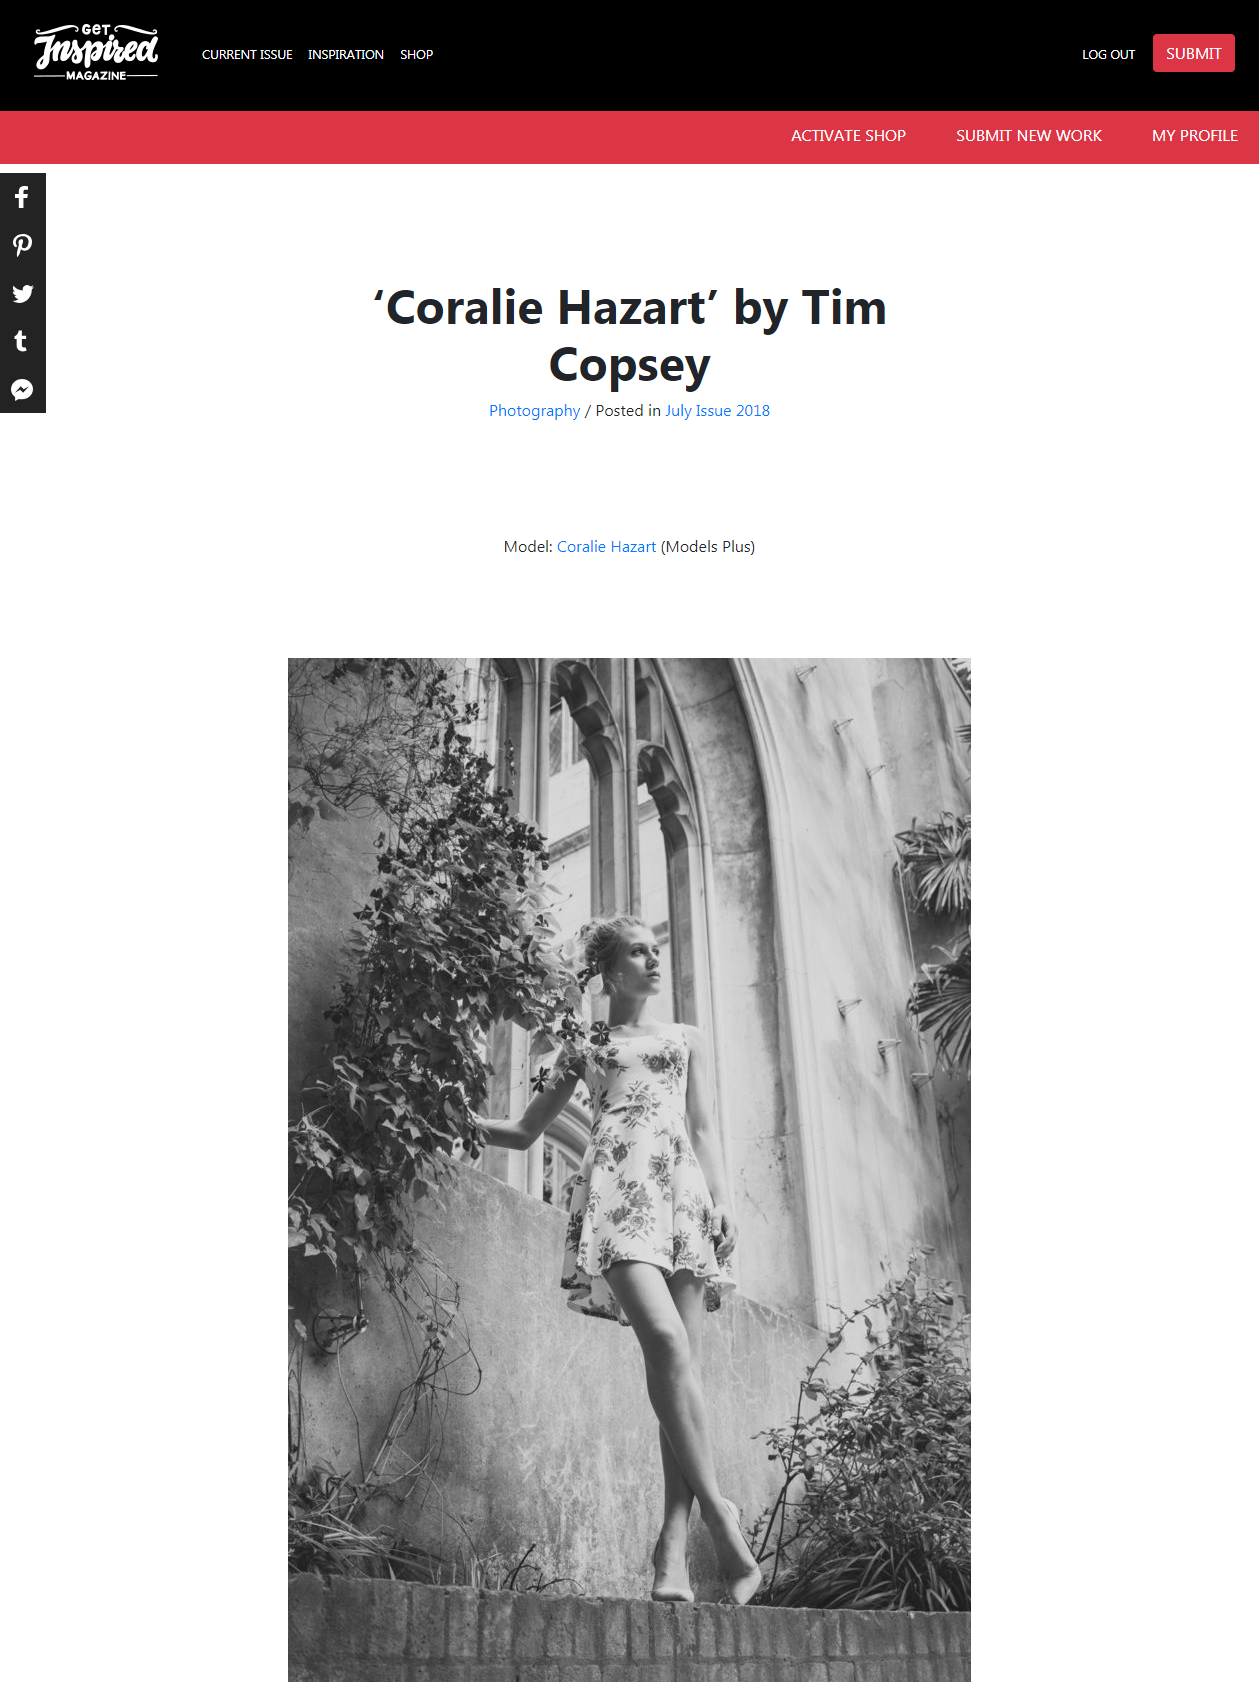 Published in Get Inspired Magazine with CoralieHazart